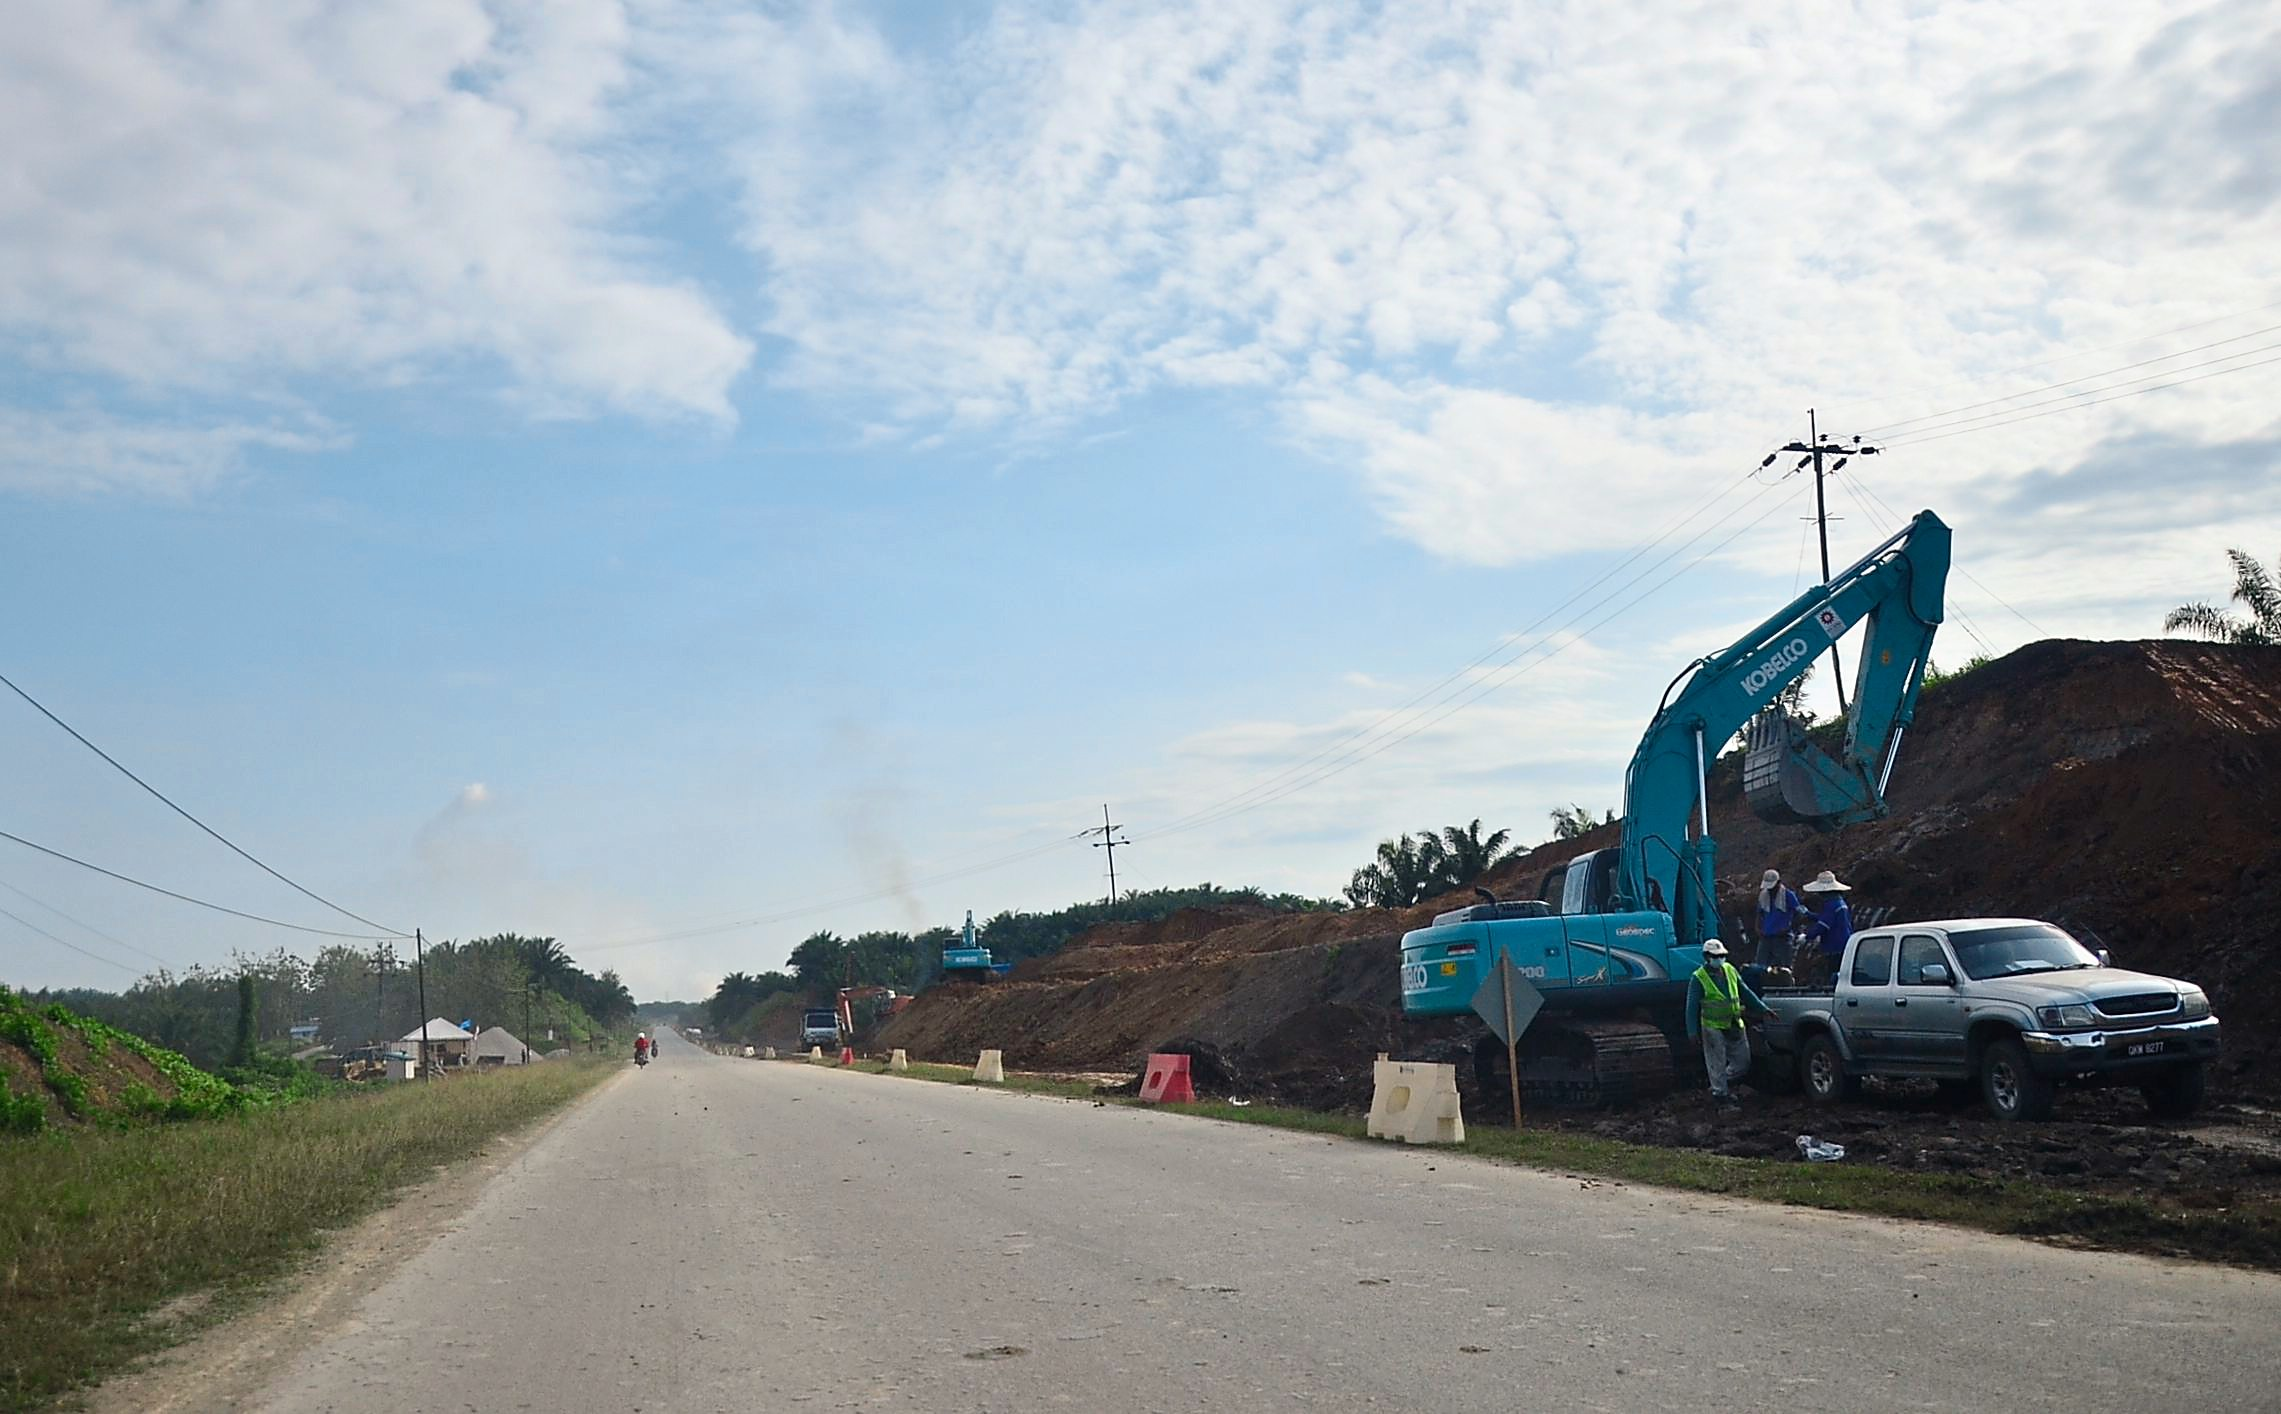 Upgrading of the Pan Borneo highway has begun as can be seen here along the Bintulu stretch in the northern Sawarak. Caption....long road. Upgrading of the Pan Borneo highway has began as can be seen here along the Bintulu stretch in northern Sarawak. Pic by SPDP Bintulu office.